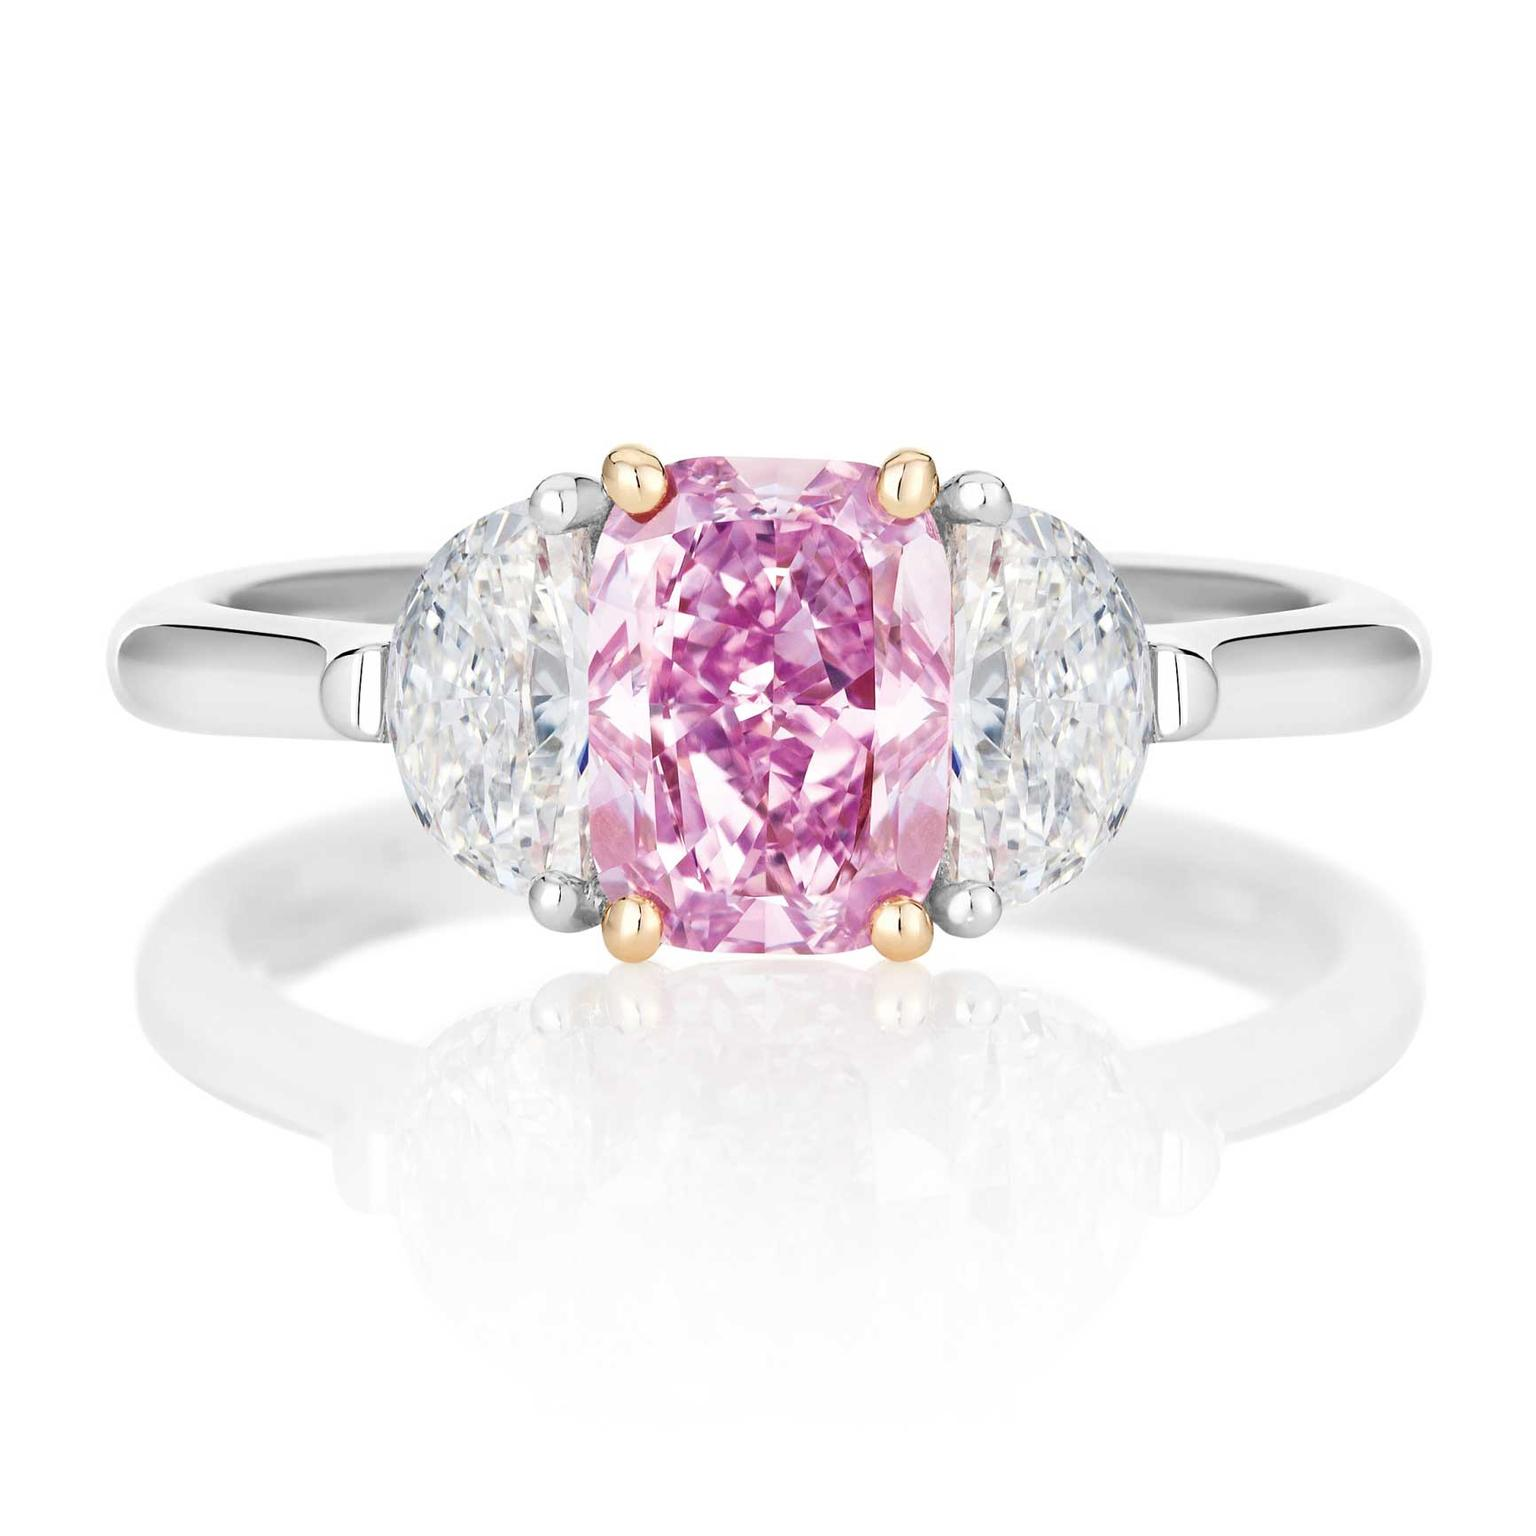 De Beers Master Diamonds pink diamond ring